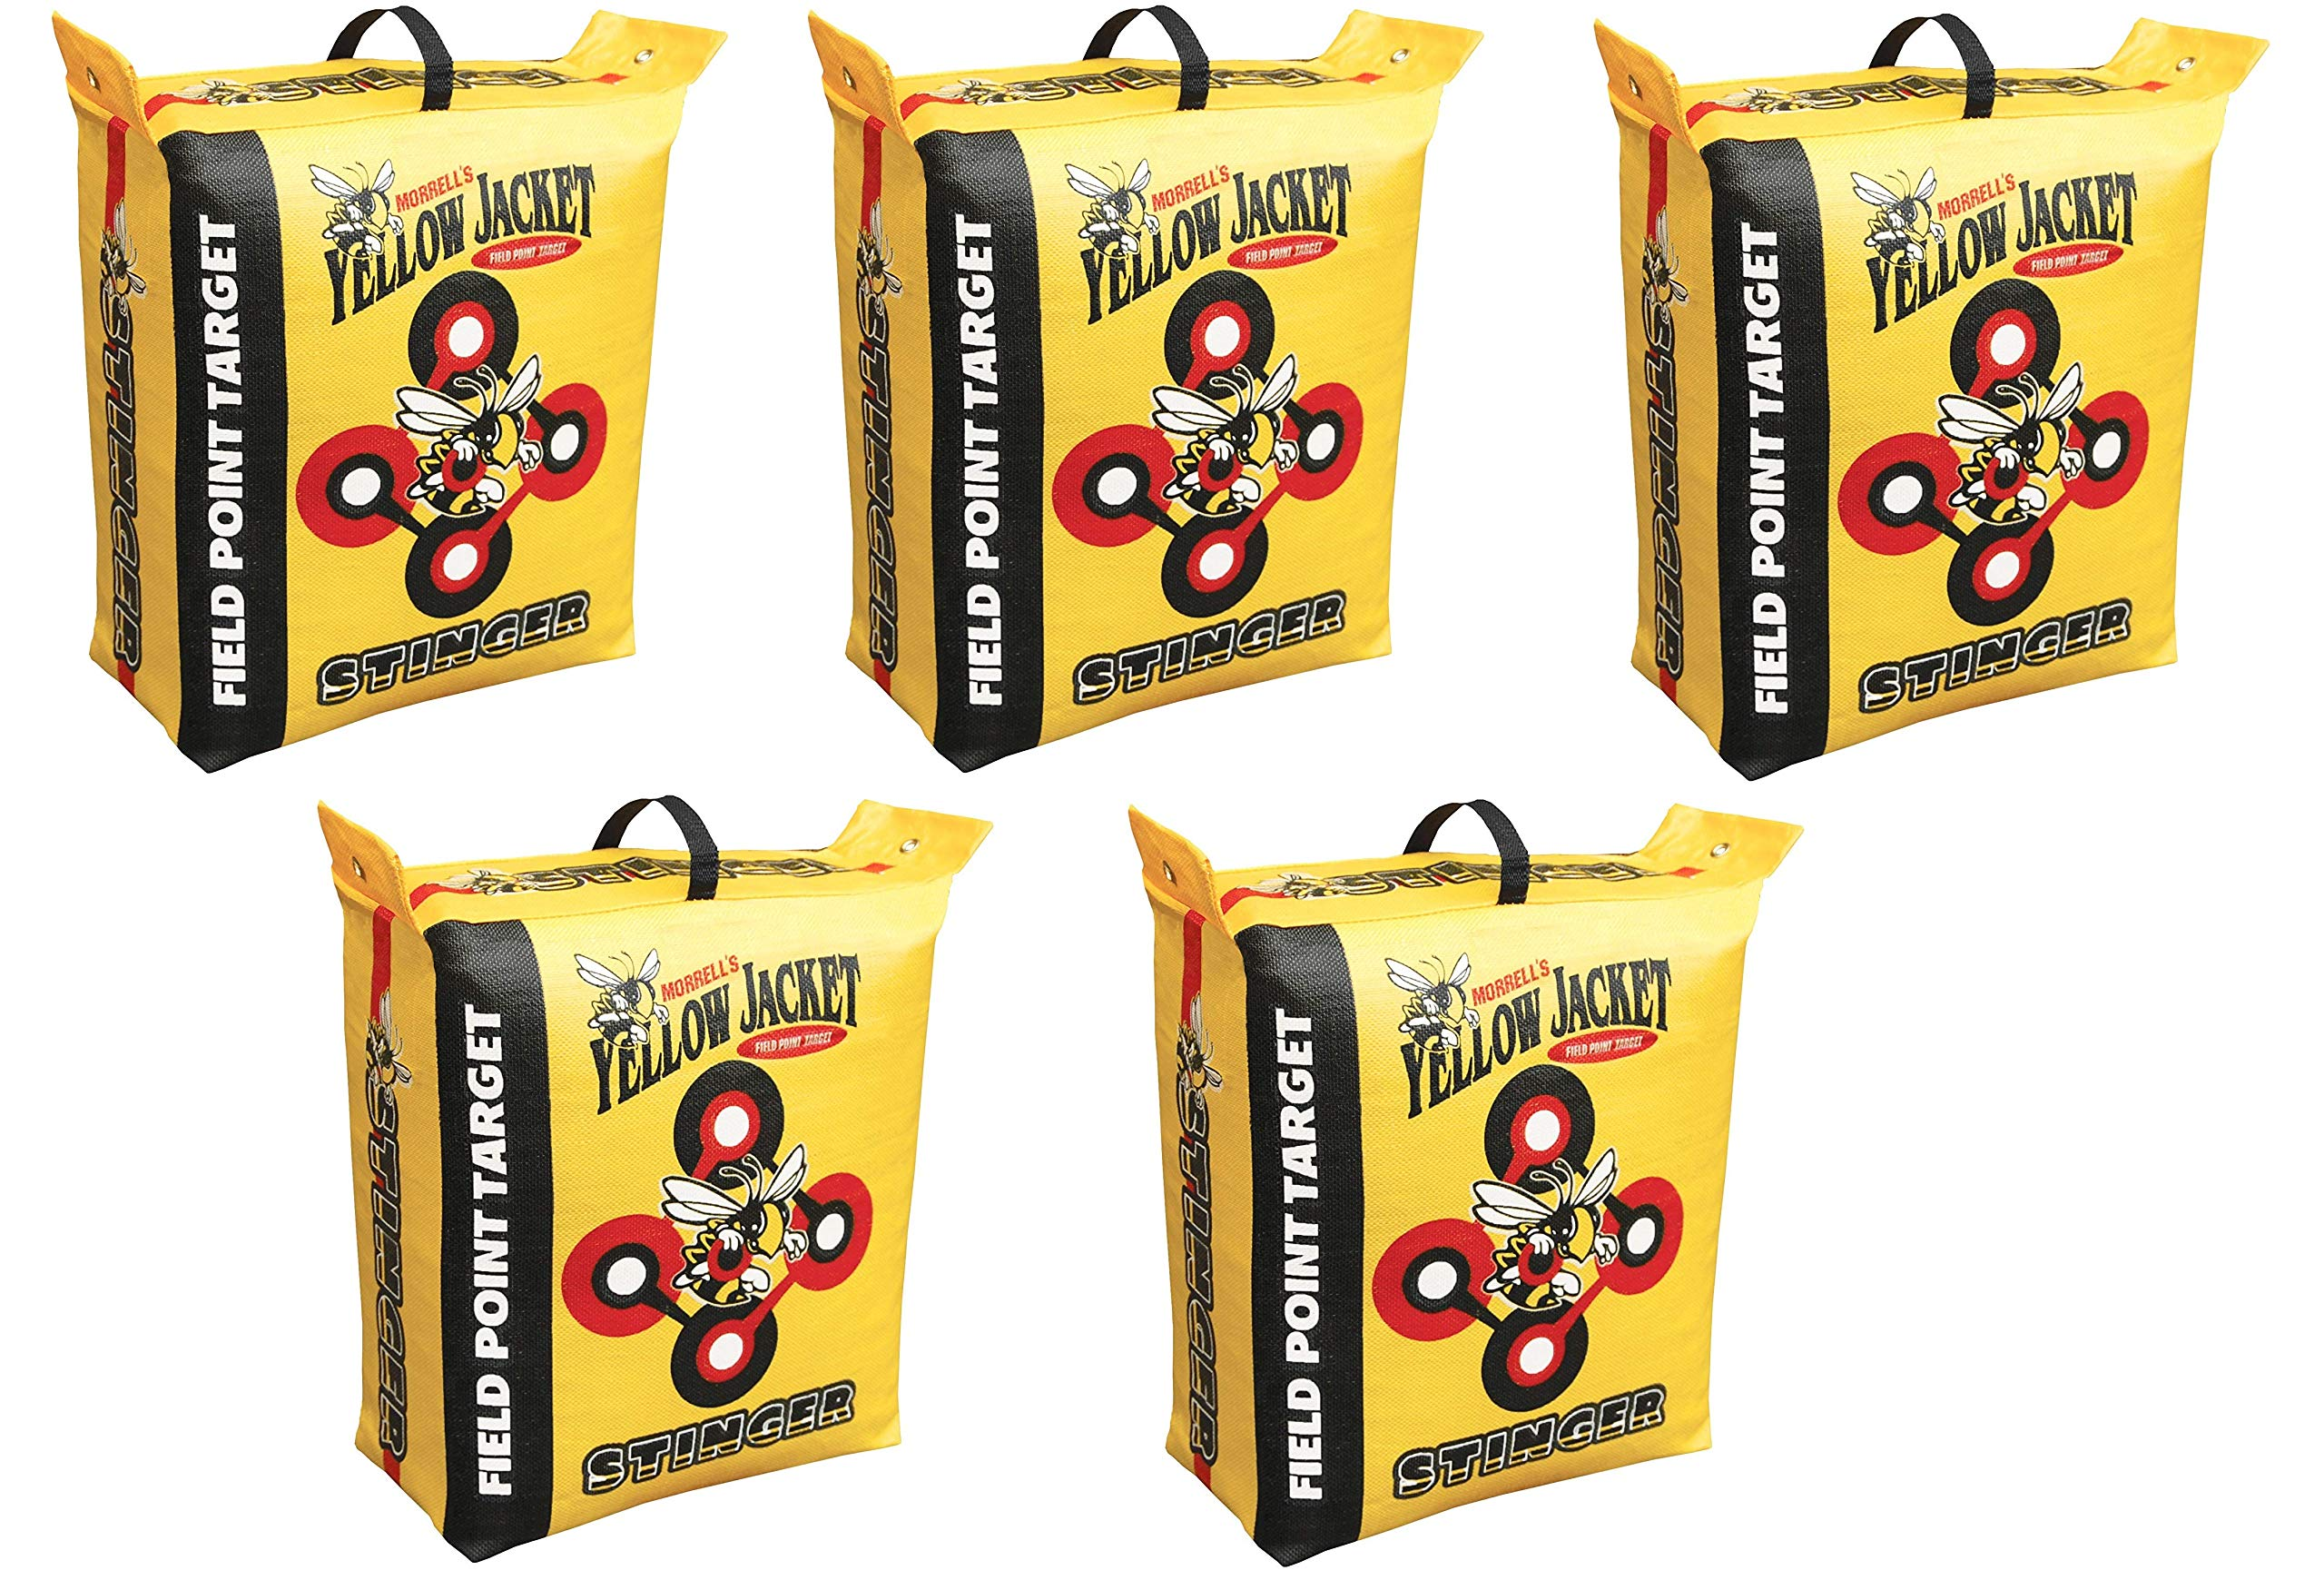 Morrell Yellow Jacket Stinger Field Point Bag Archery Target - Great for Compound and Traditional Bows (5-Pack) by Morrell